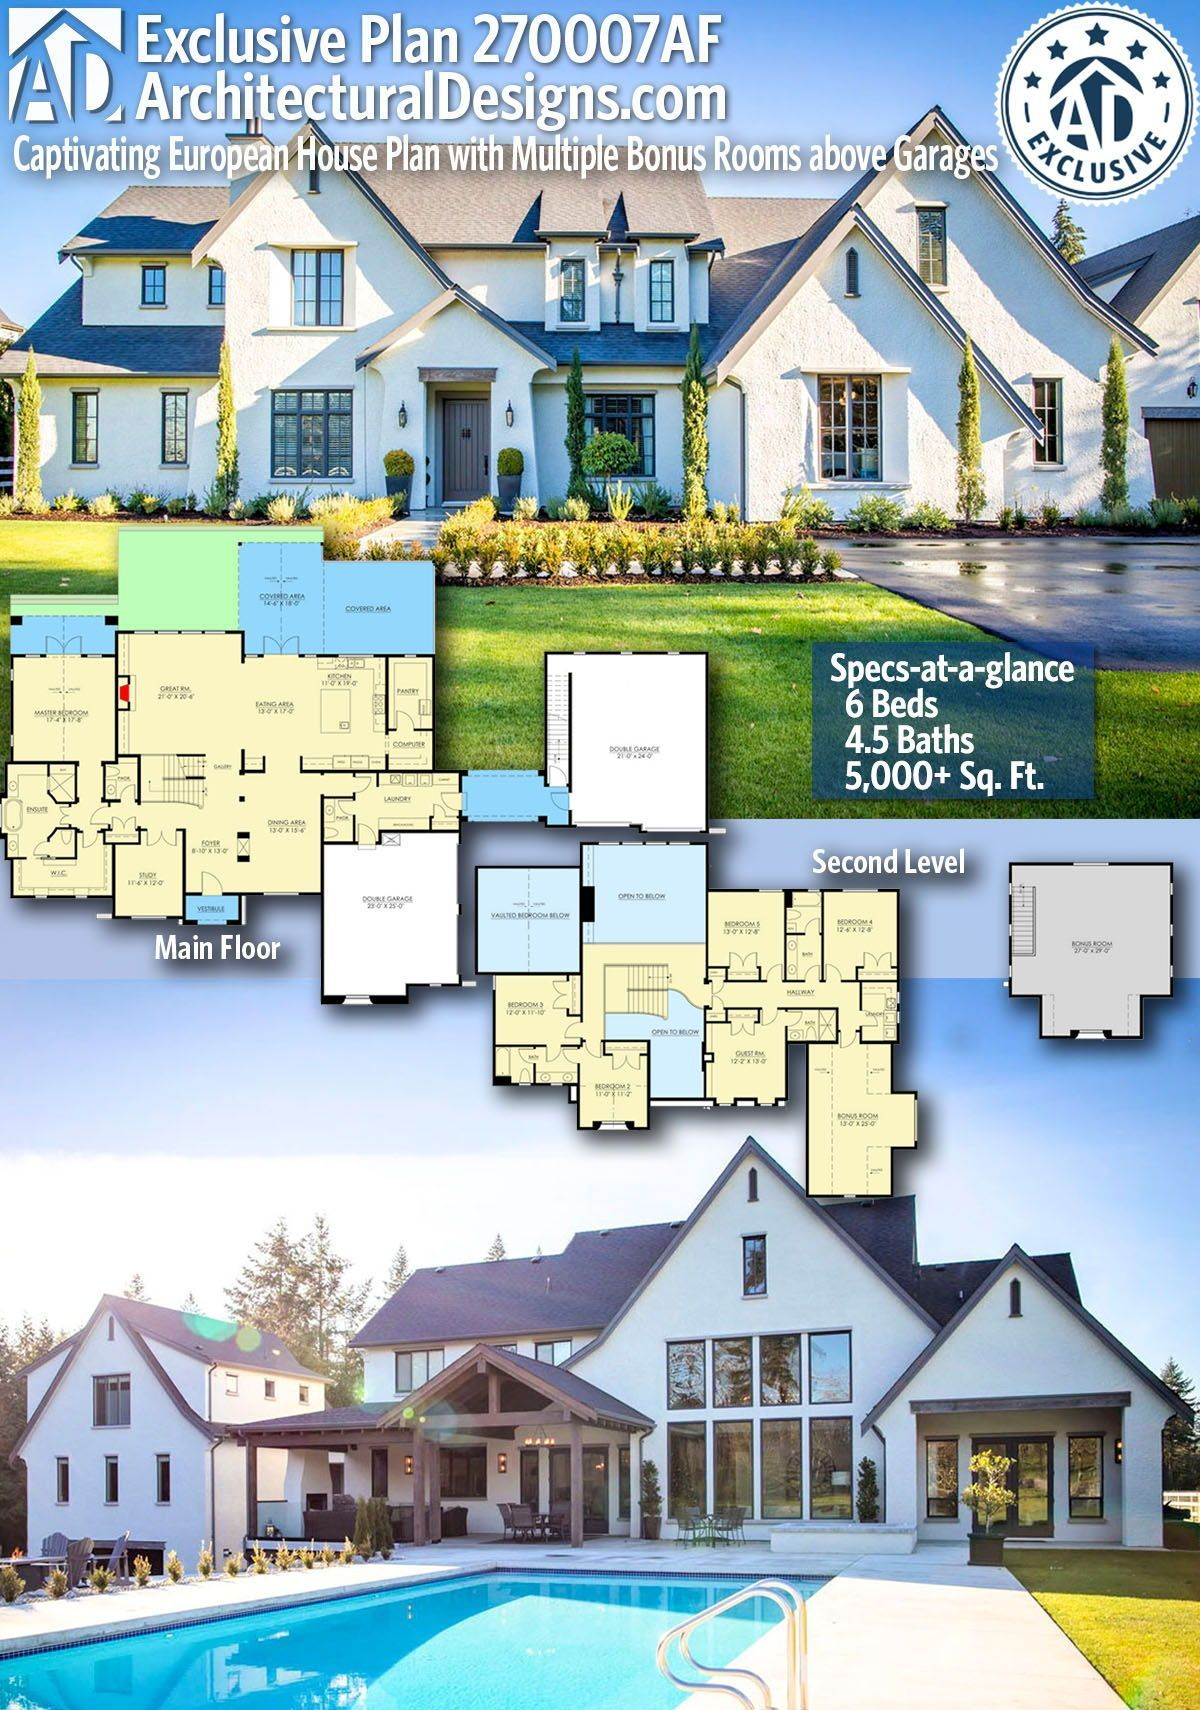 Architectural Designs Exclusive European Home Plan 270007af Gives You 6 Bedrooms 4 5 Baths And 5 00 Family House Plans House Plans Farmhouse Dream House Plans